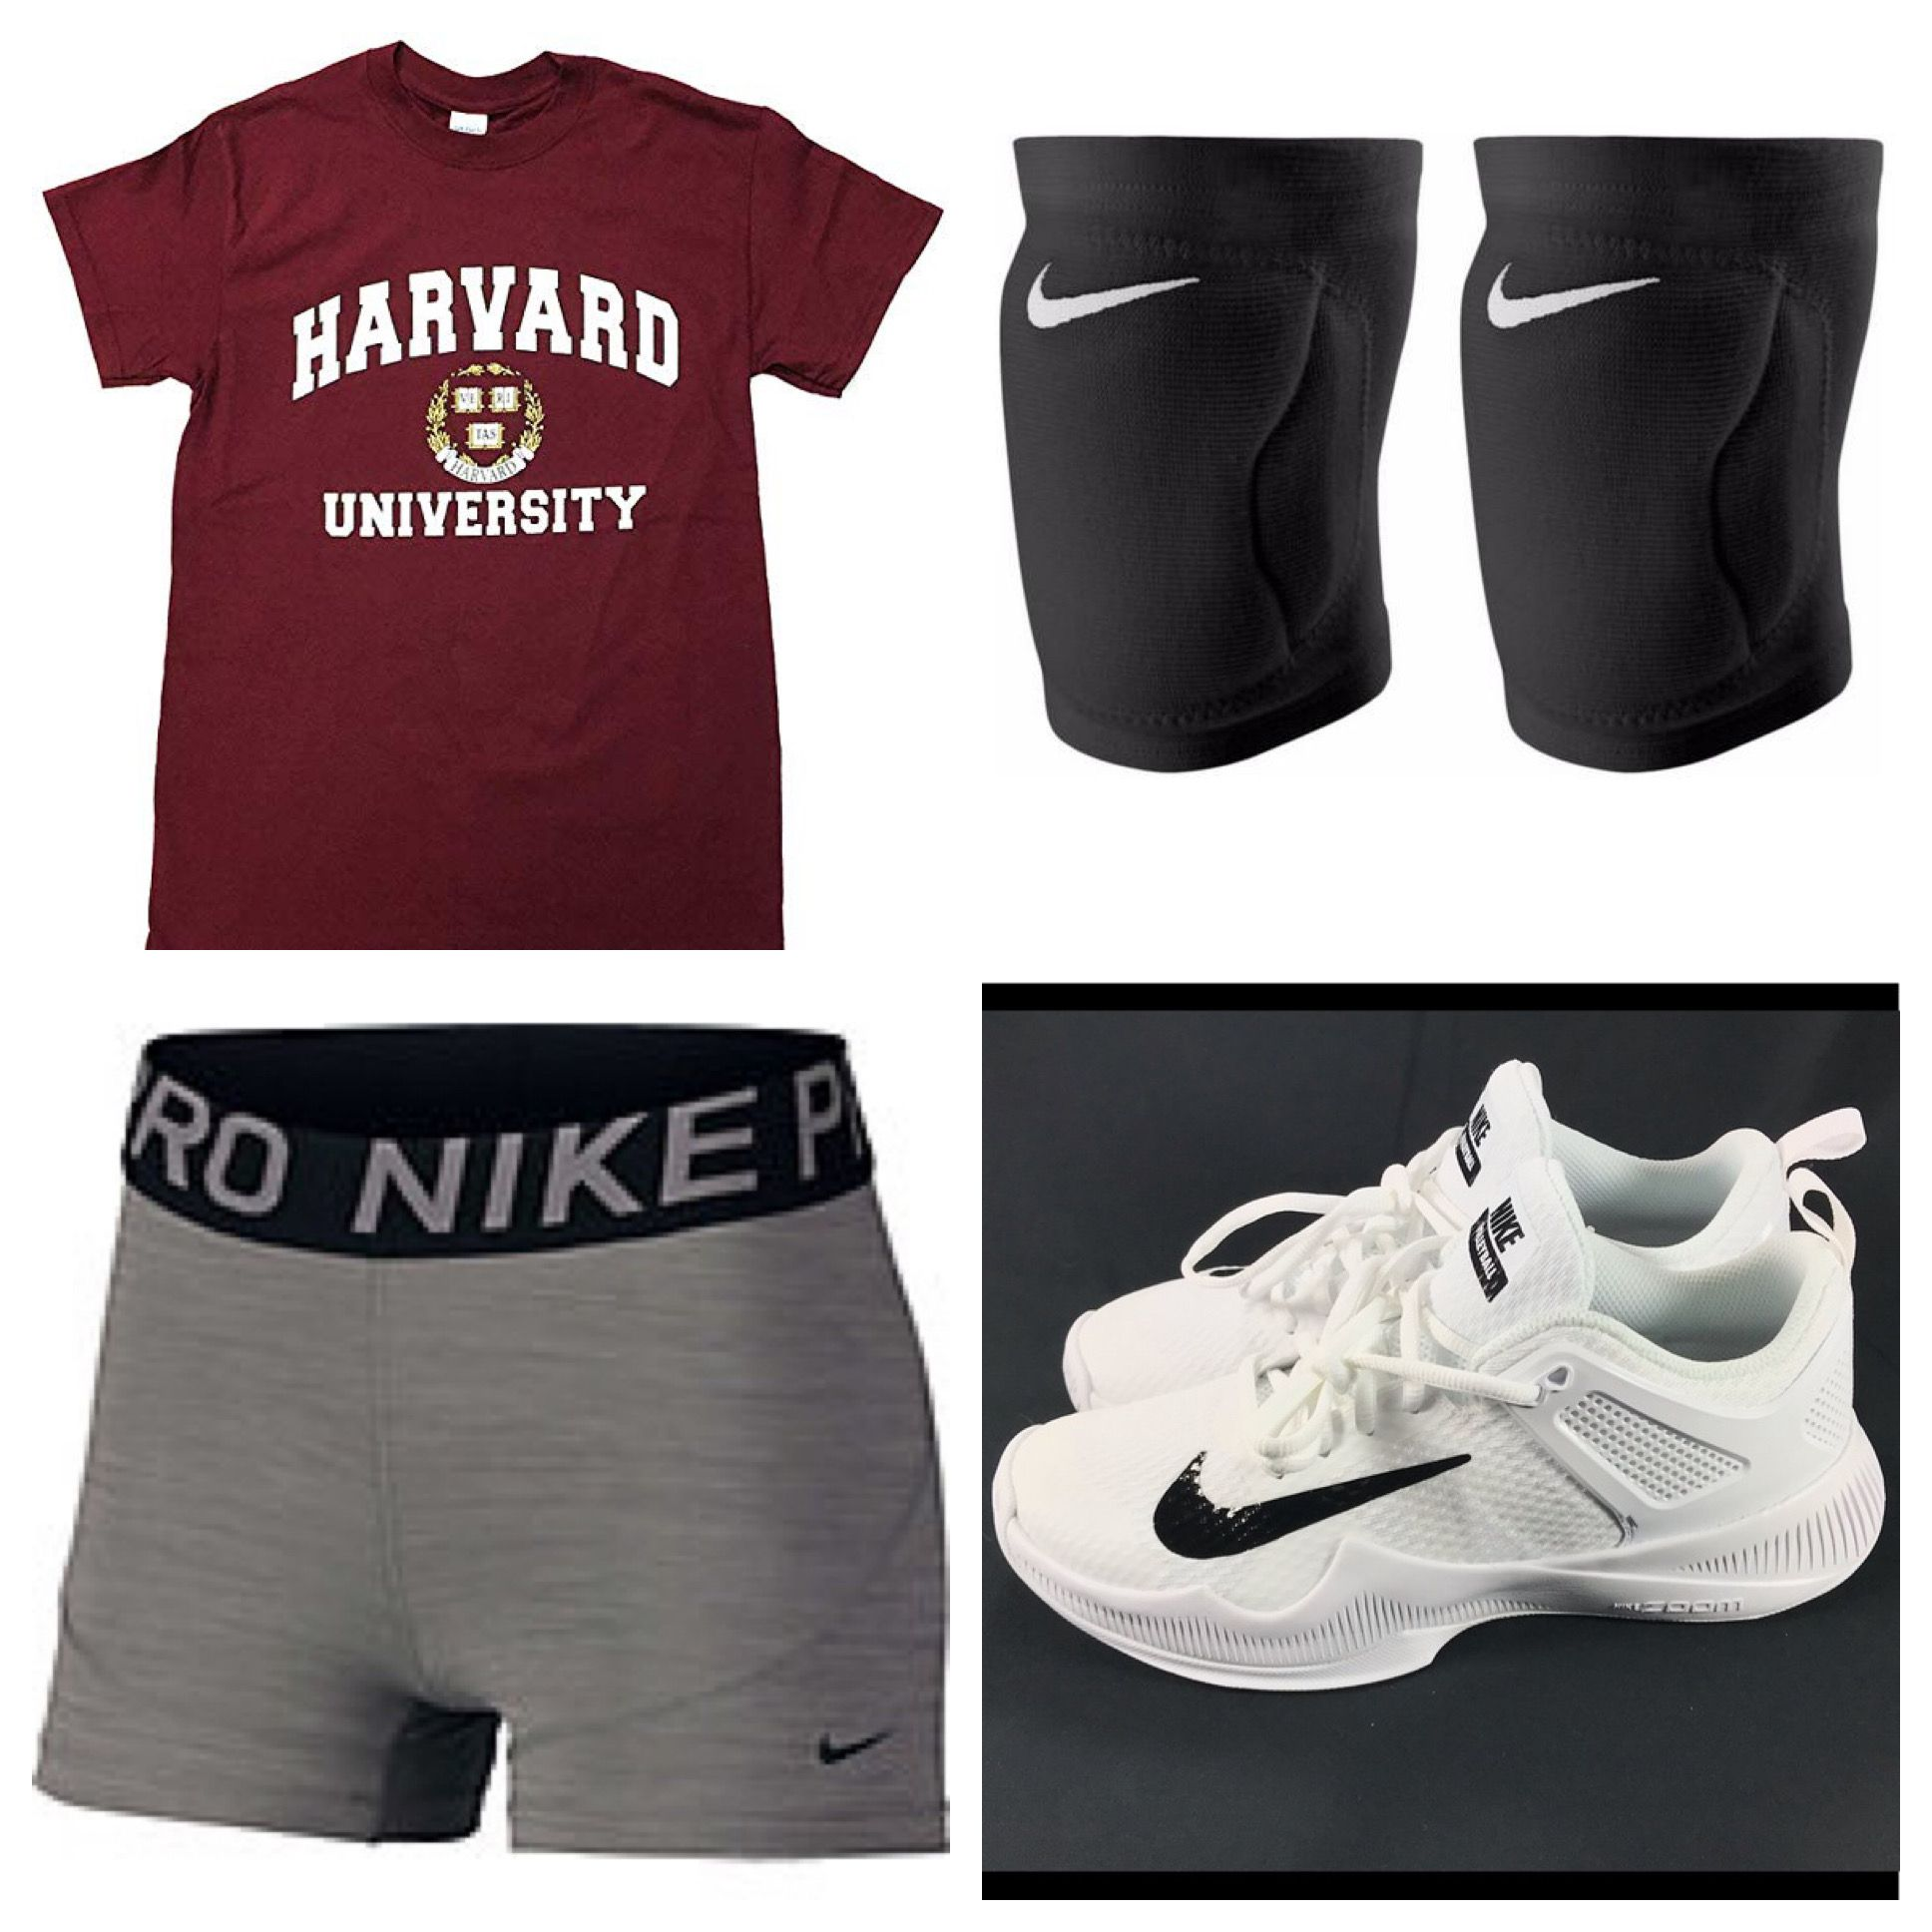 Volleyball Practice Outfit Idea Volleyball Outfits Practice Outfits Volleyball Practice